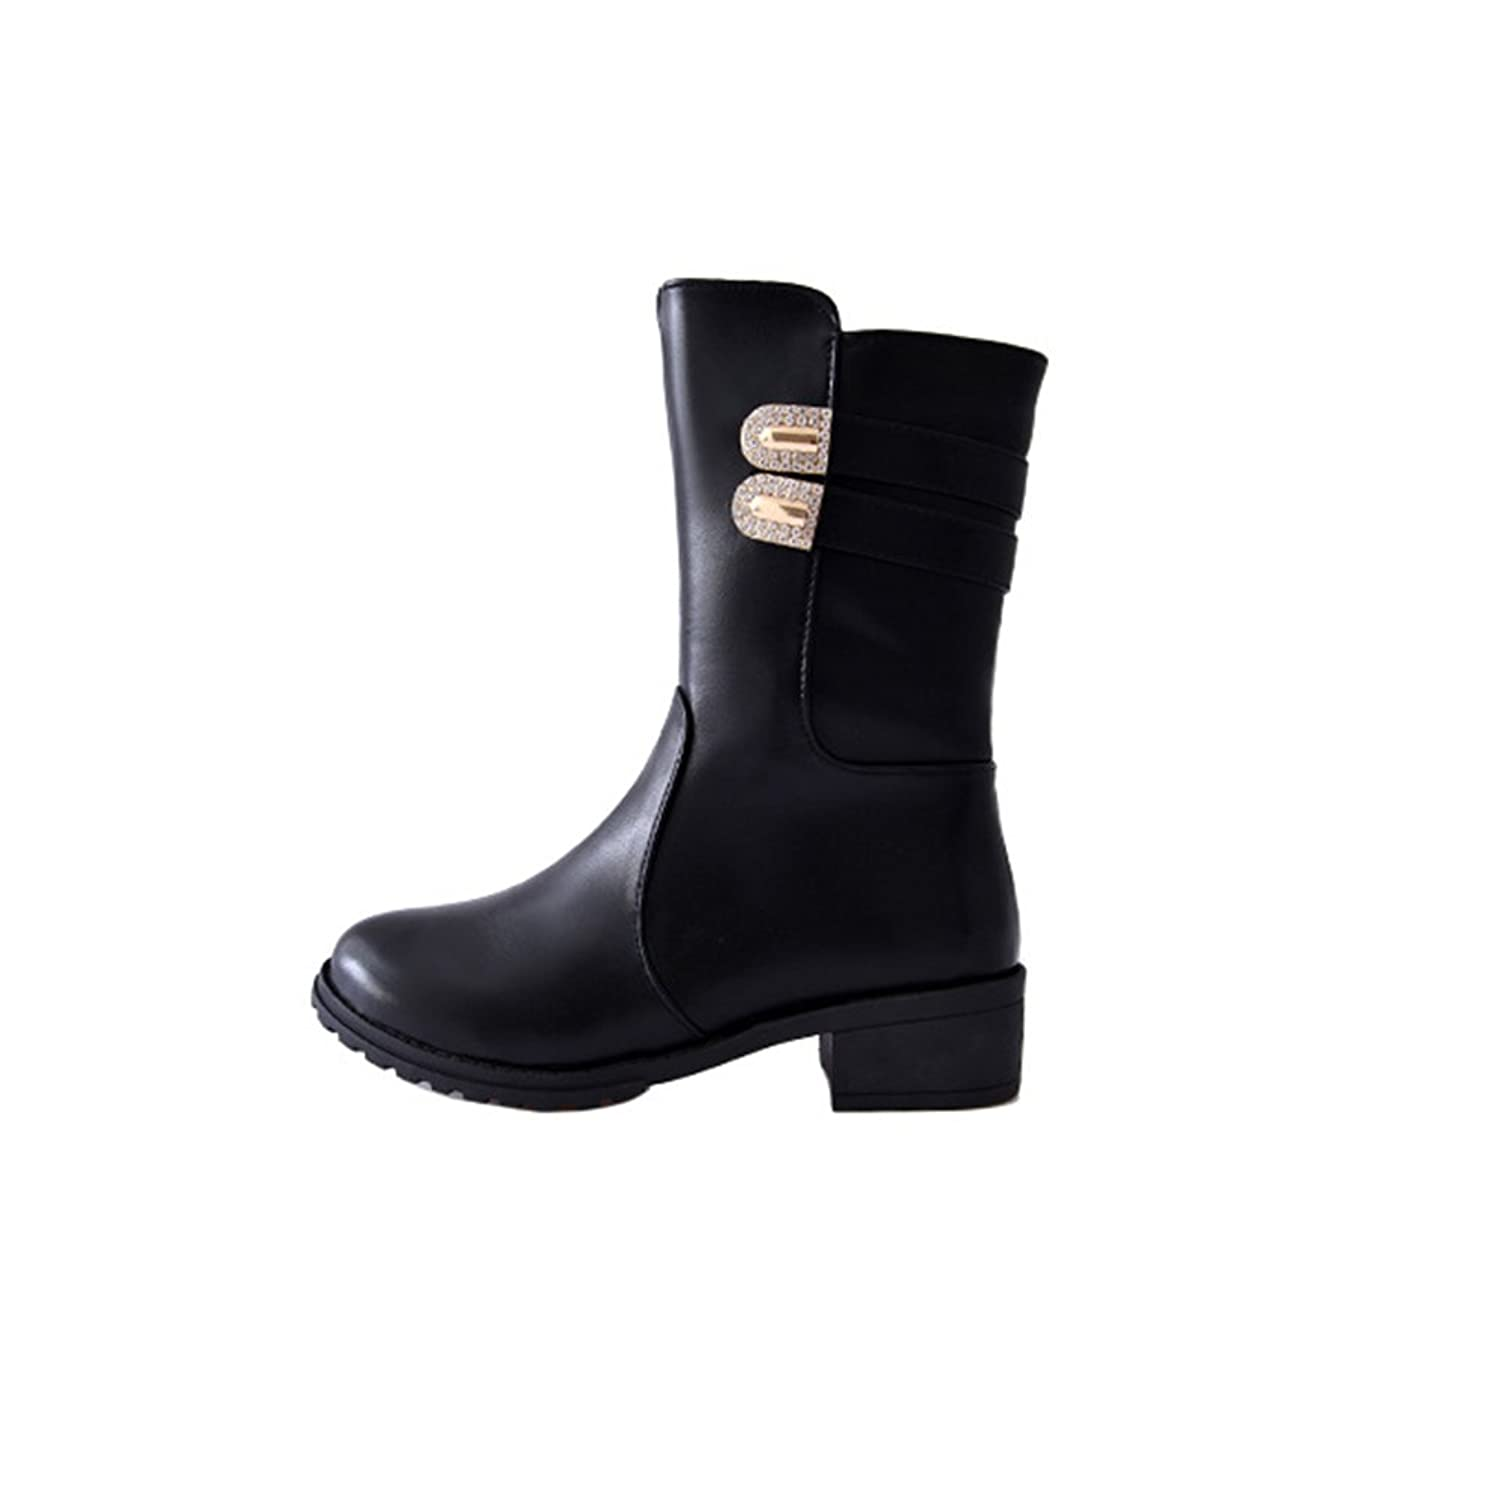 Hotchic Winter Warm Martin Shoes New Design Boots for Women Black Shoes Cool Boots